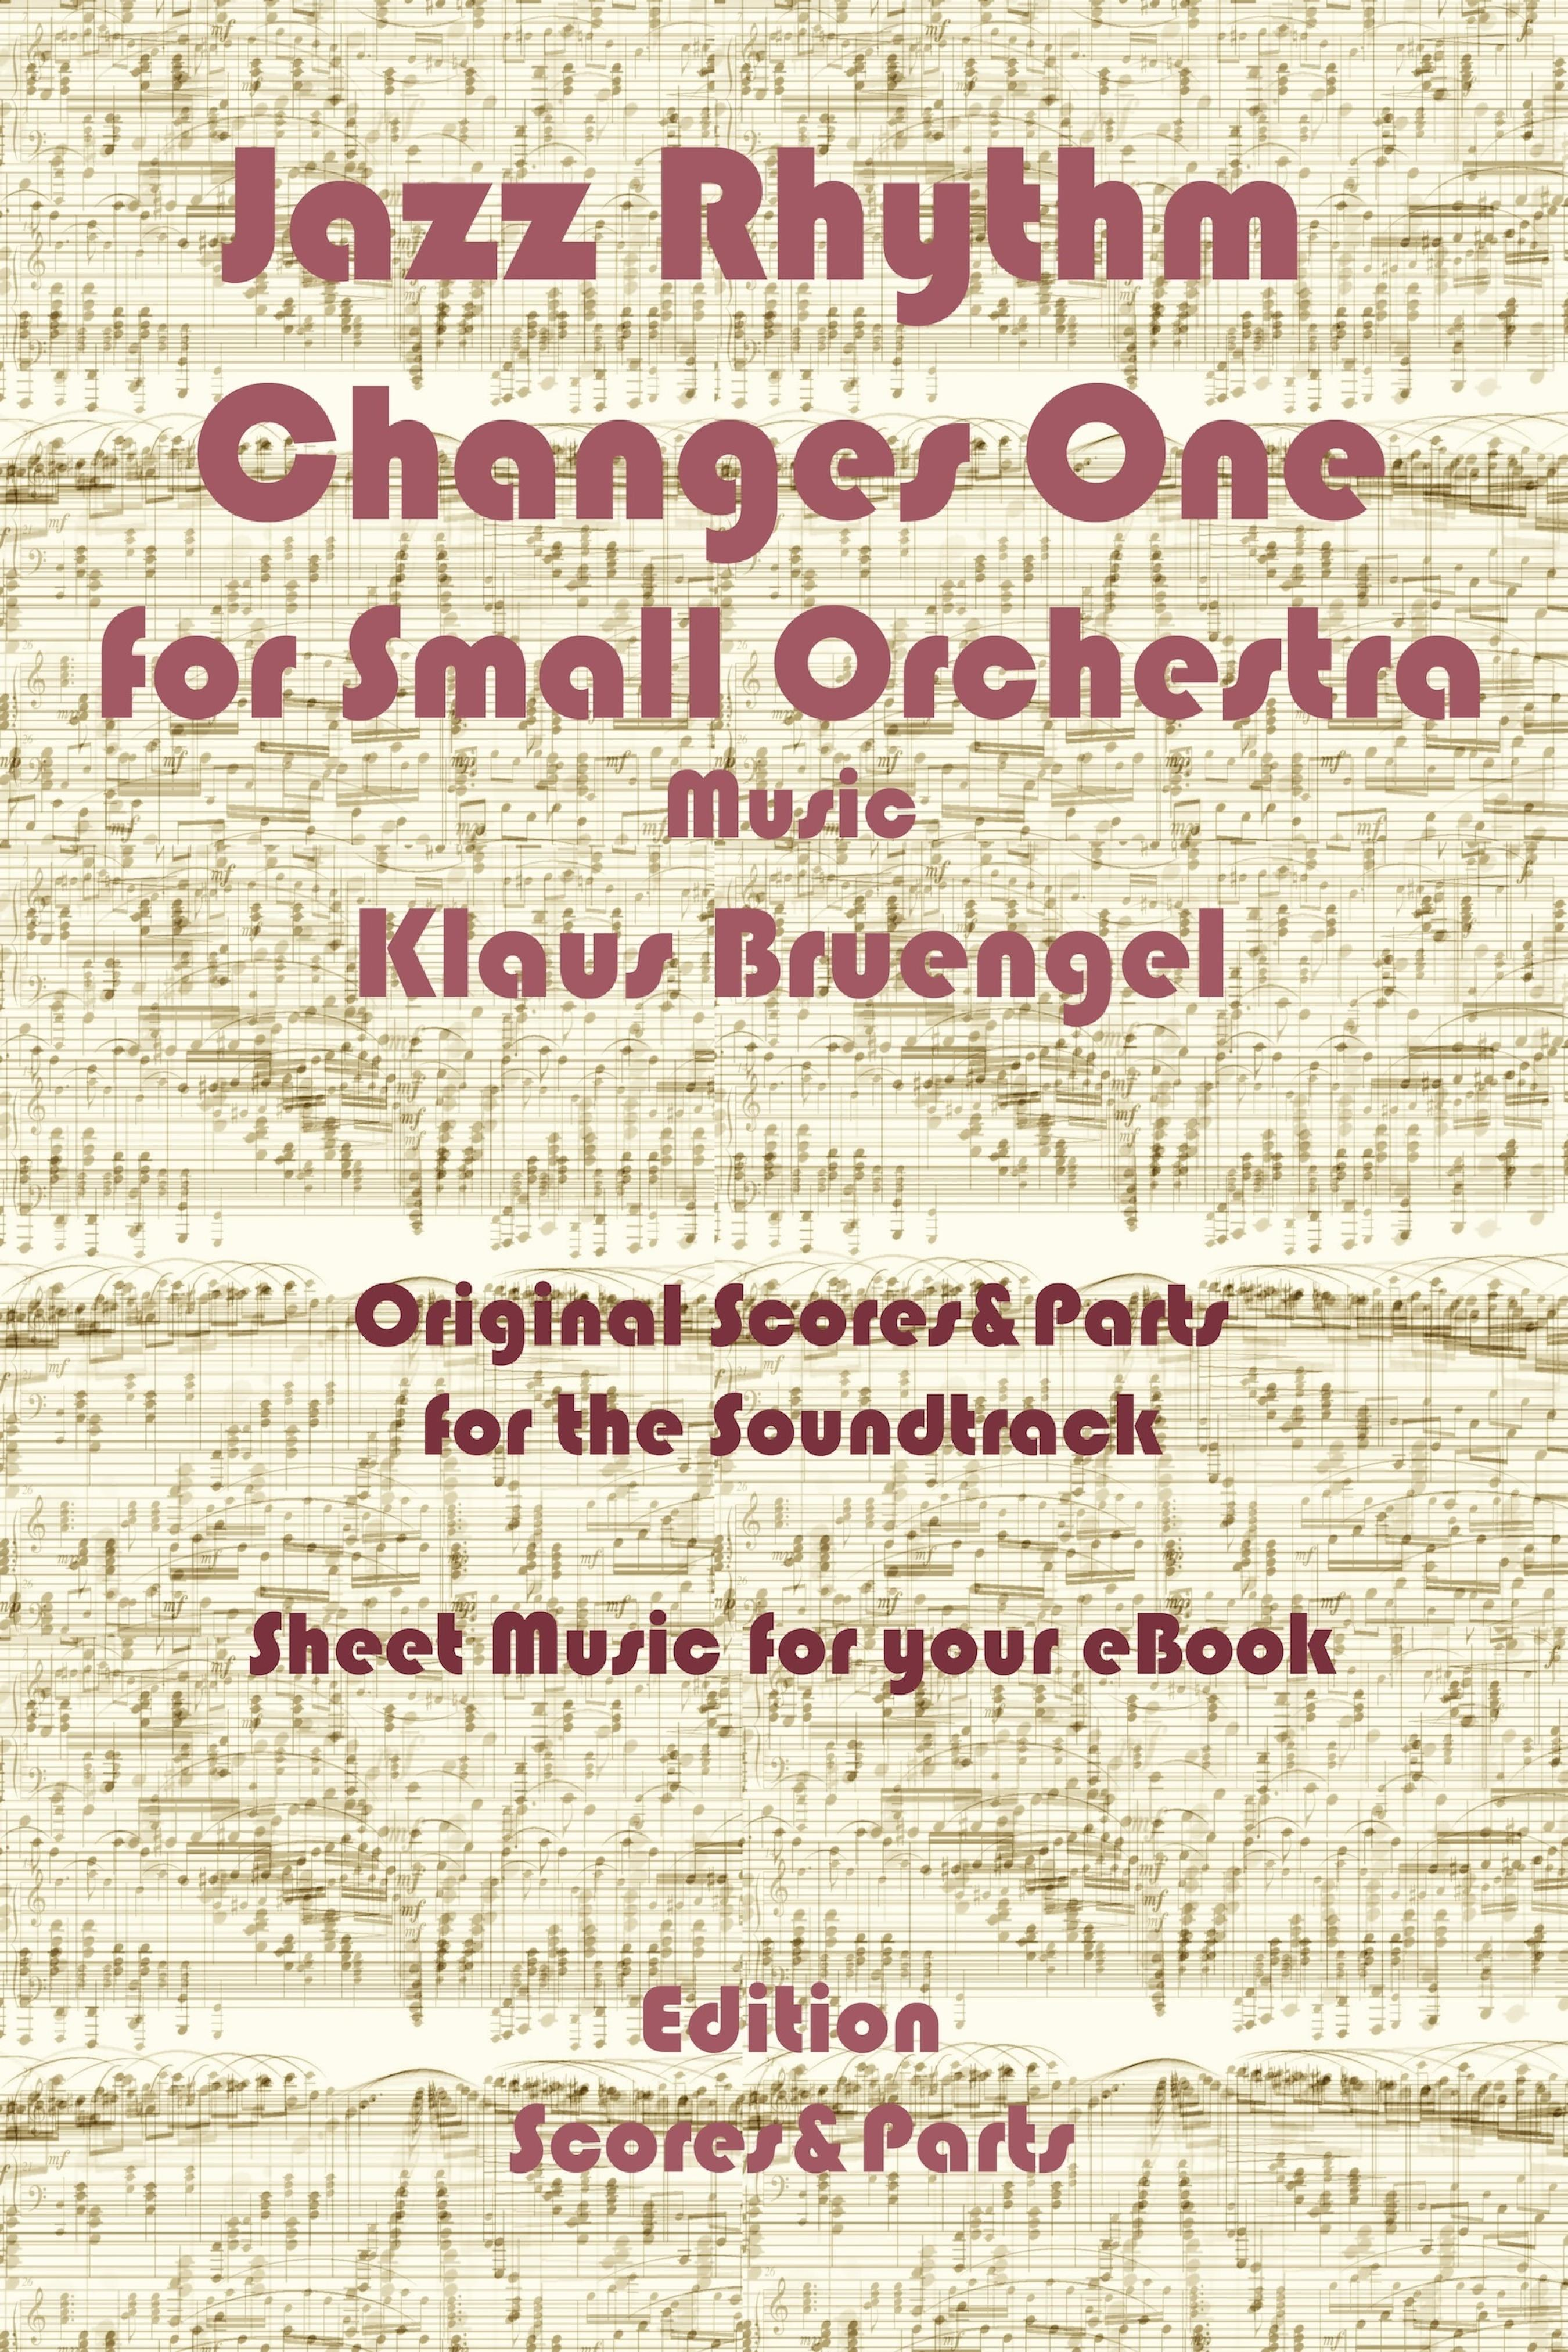 Klaus Bruengel Jazz Rhythm Changes One for Small Orchestra h zilcher suite for 2 violins and small orchestra op 15